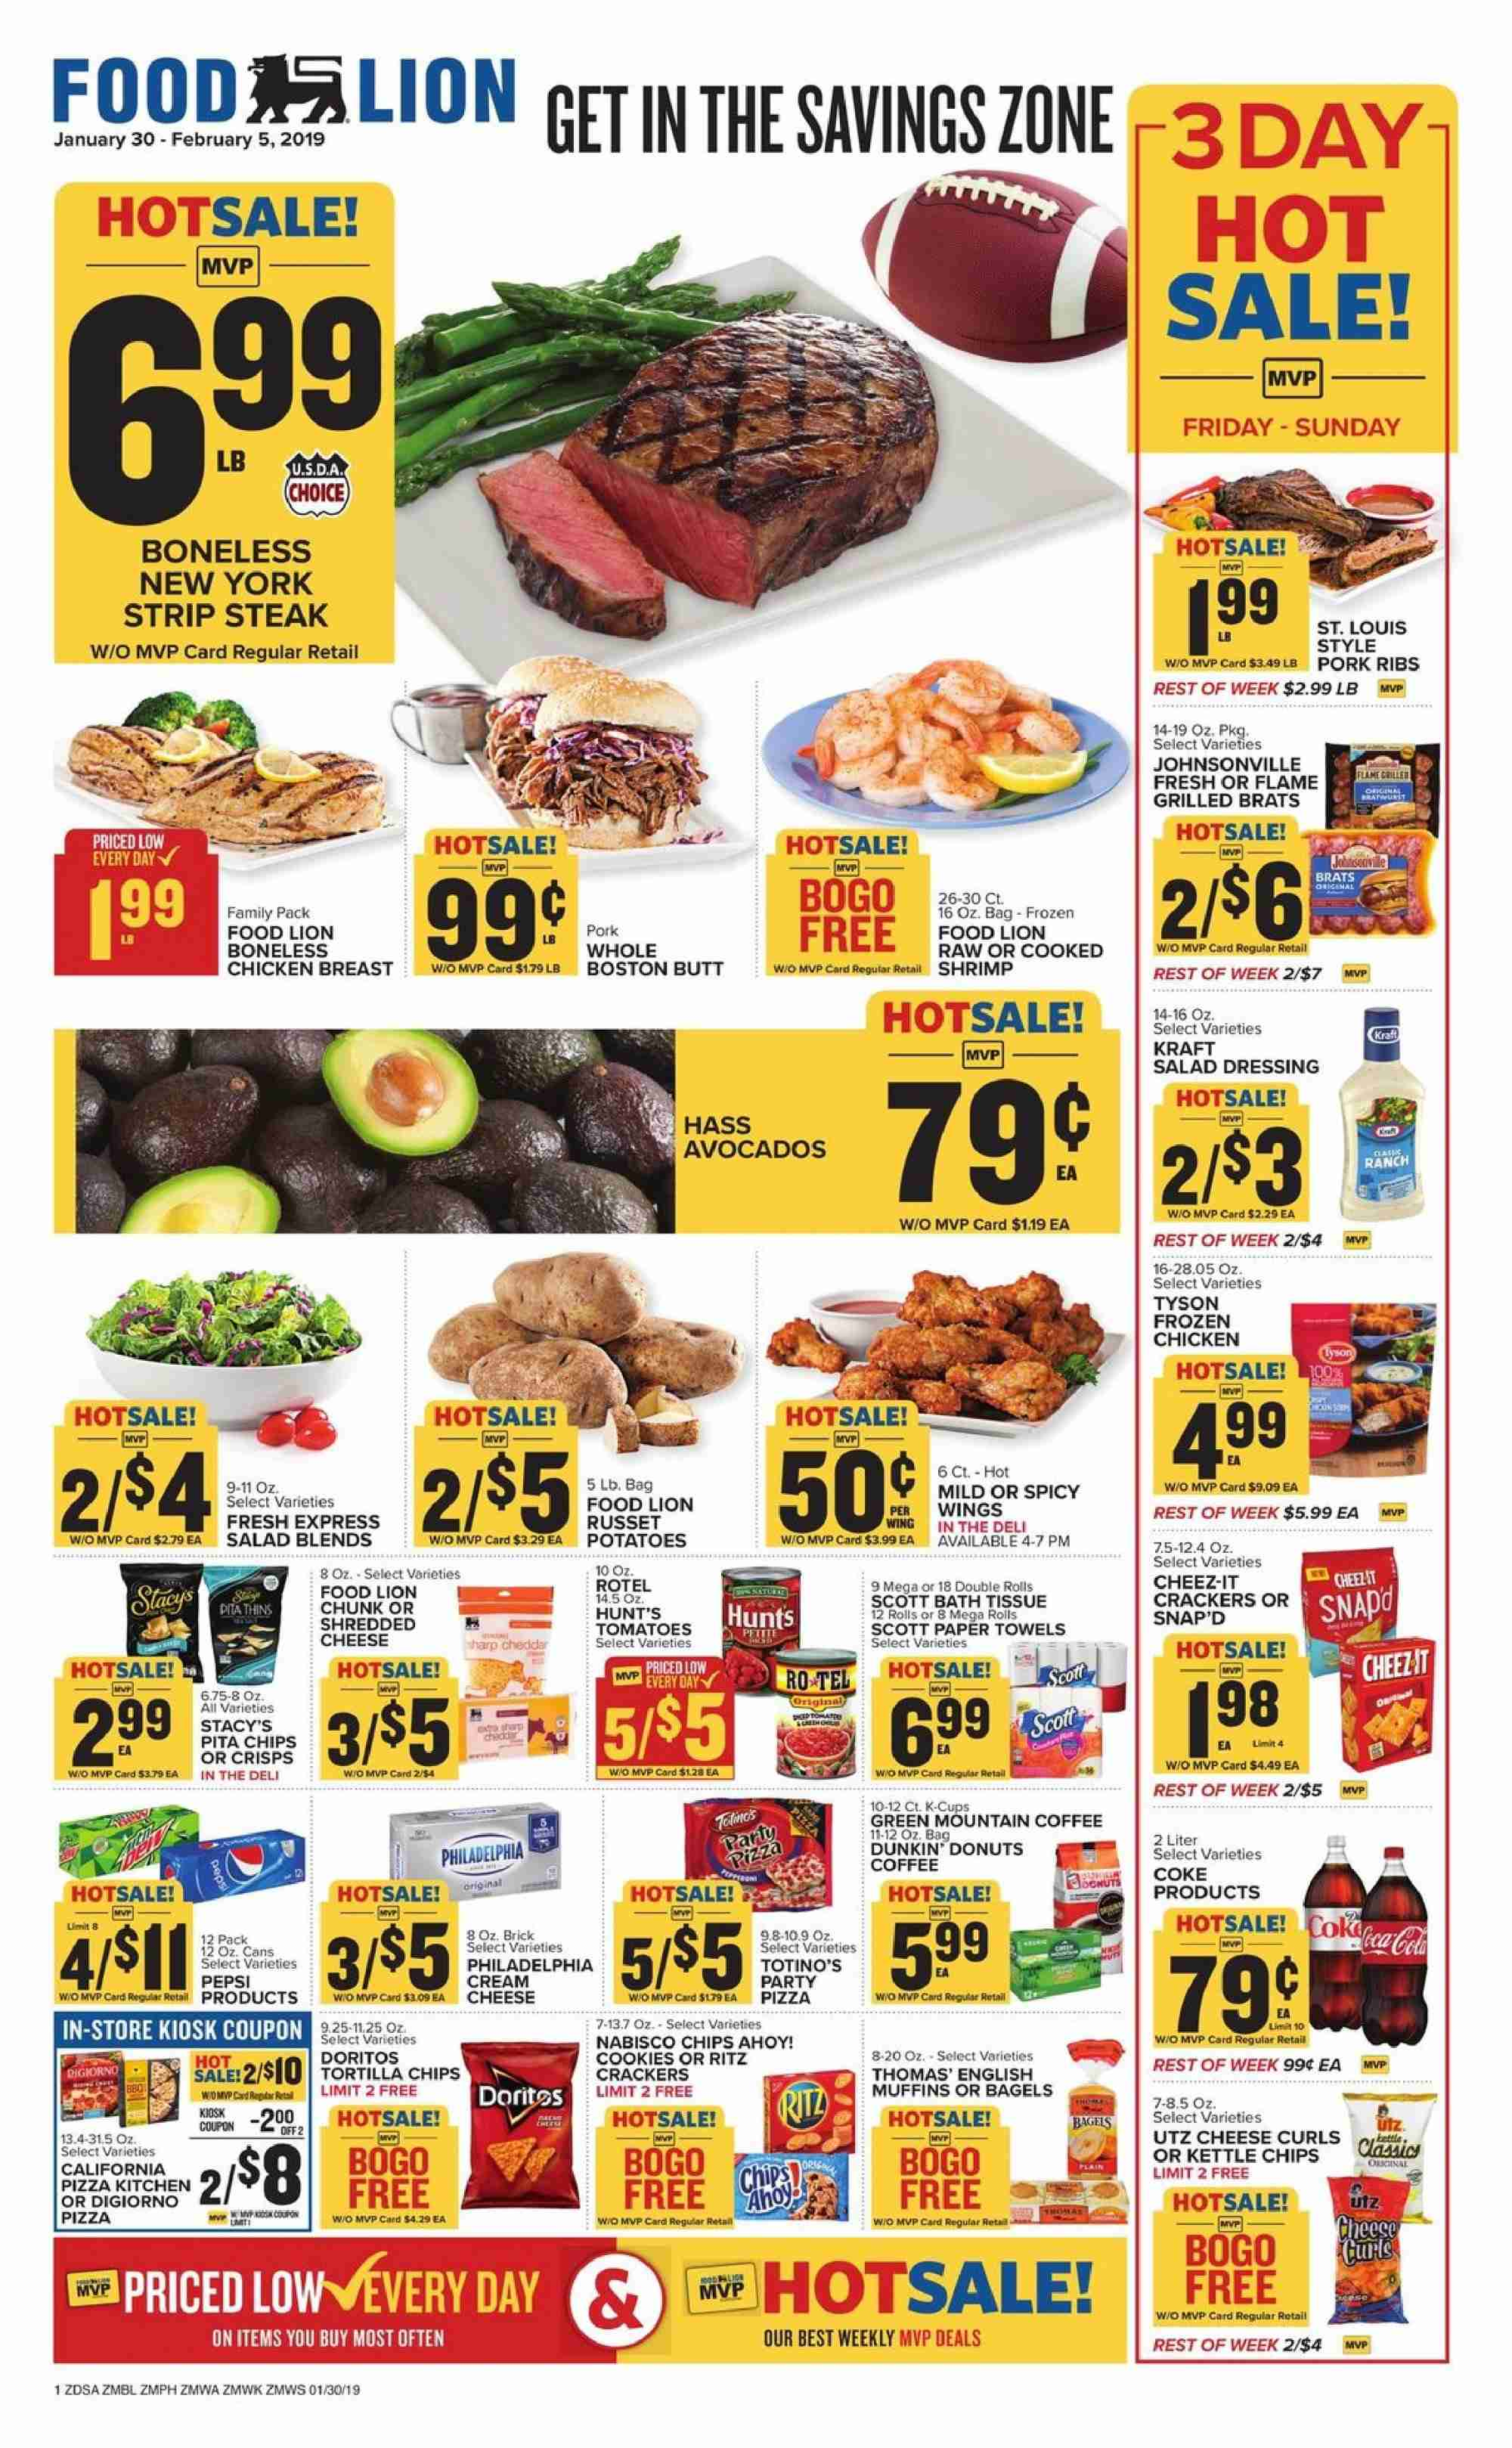 Food Lion Flyer - 01.30.2019 - 02.05.2019 - Sales products - tomatoes, potatoes, avocado, bagels, donut, muffin, shrimps, english muffins, pizza, salad, shredded cheese, Philadelphia, cheese, cookies, crackers, chips, dressing, salad dressing, coffee, chicken, steak, bath tissue, Frozen, cream. Page 1.